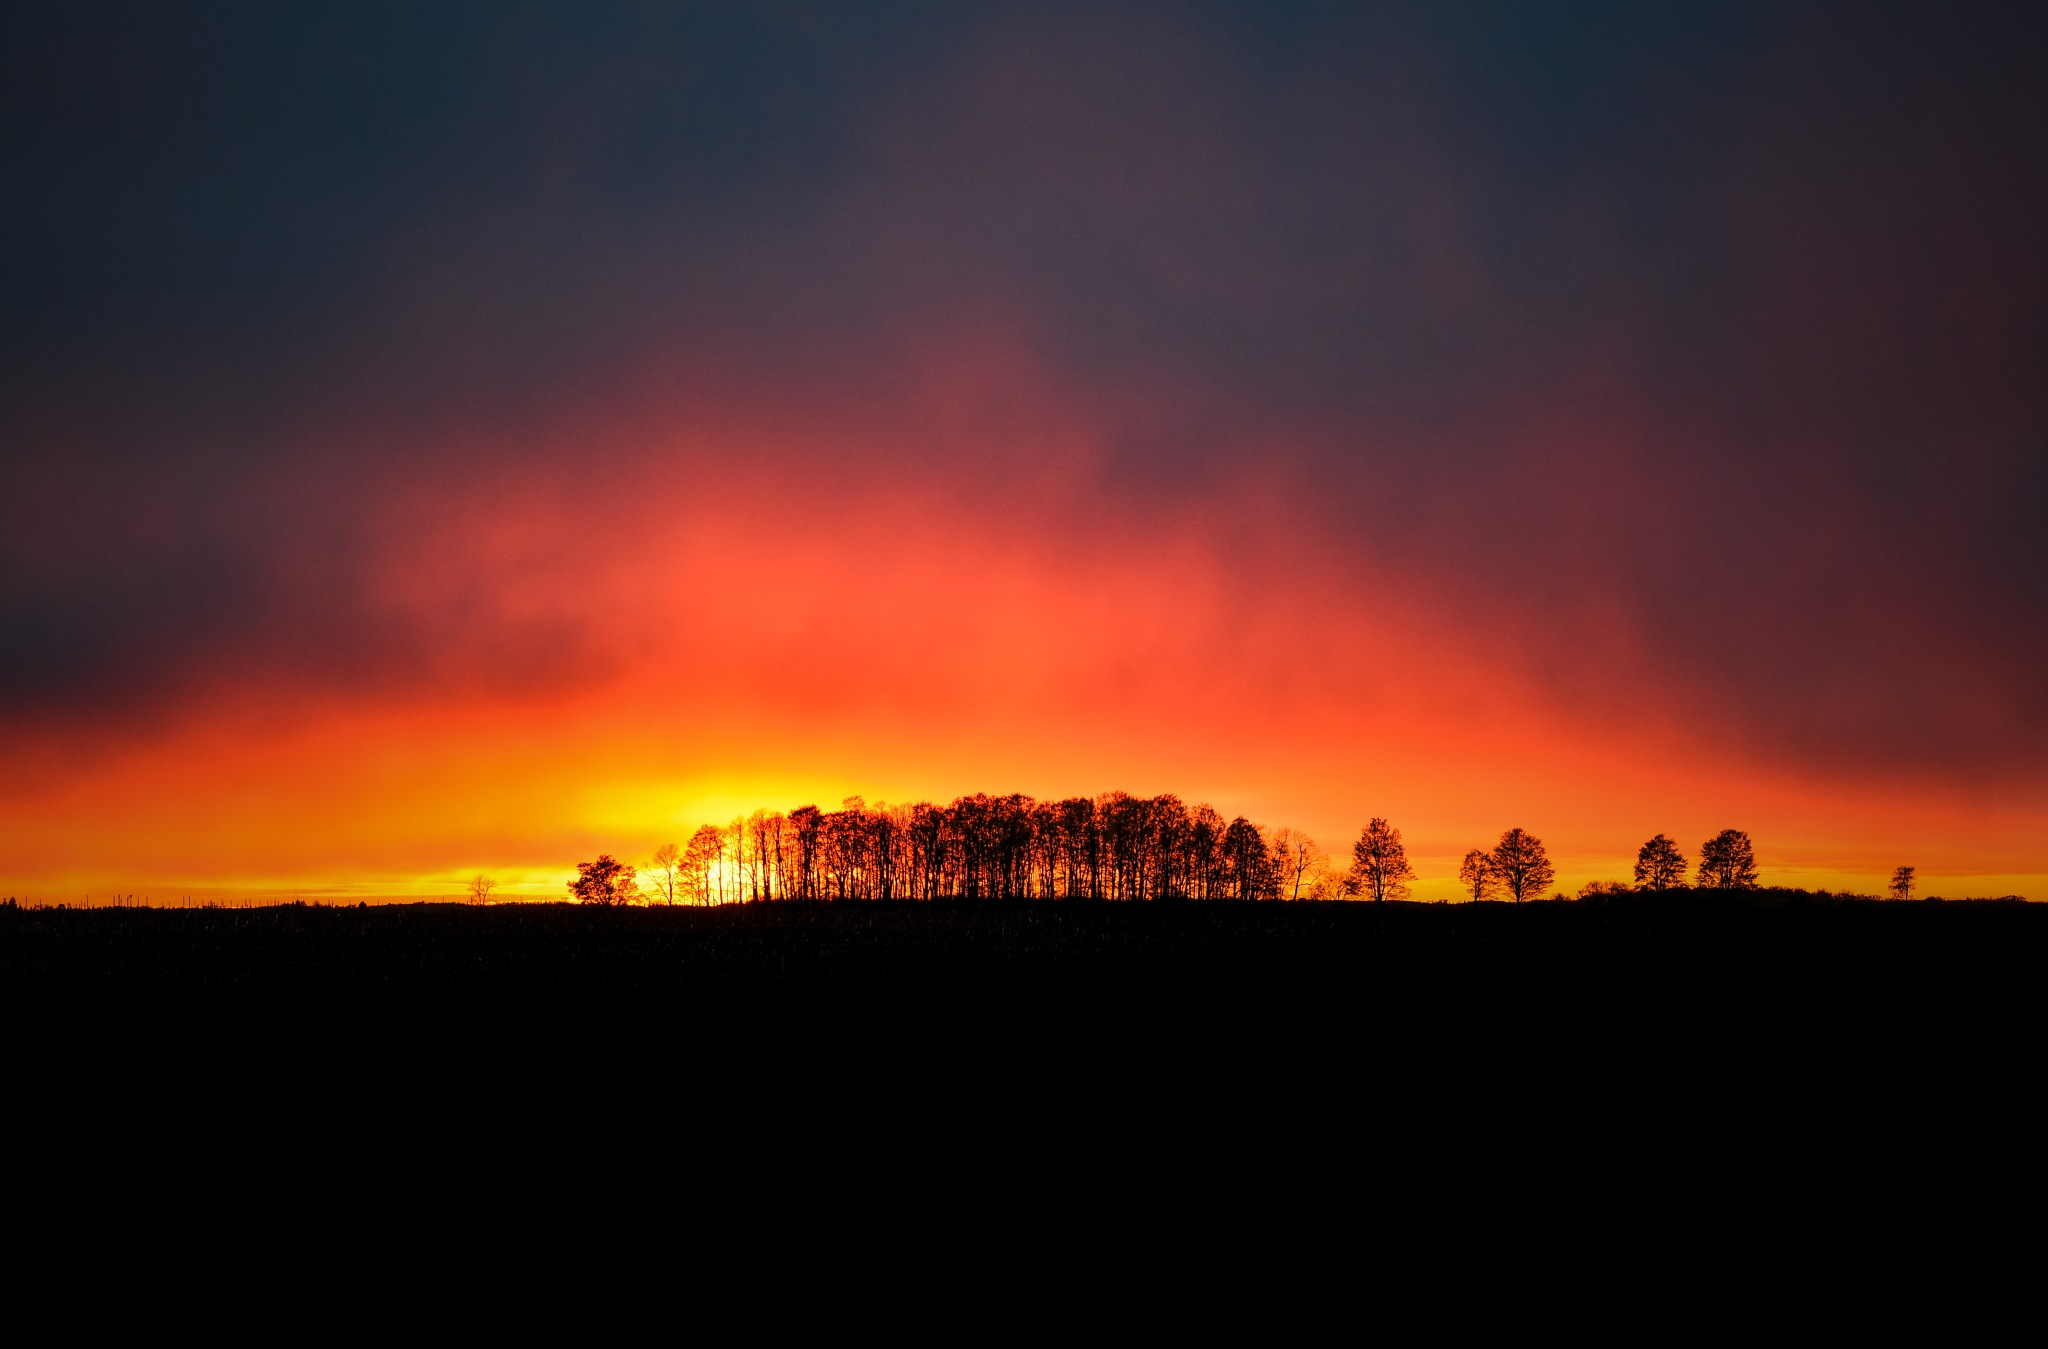 Trees On Fire by David Ryce